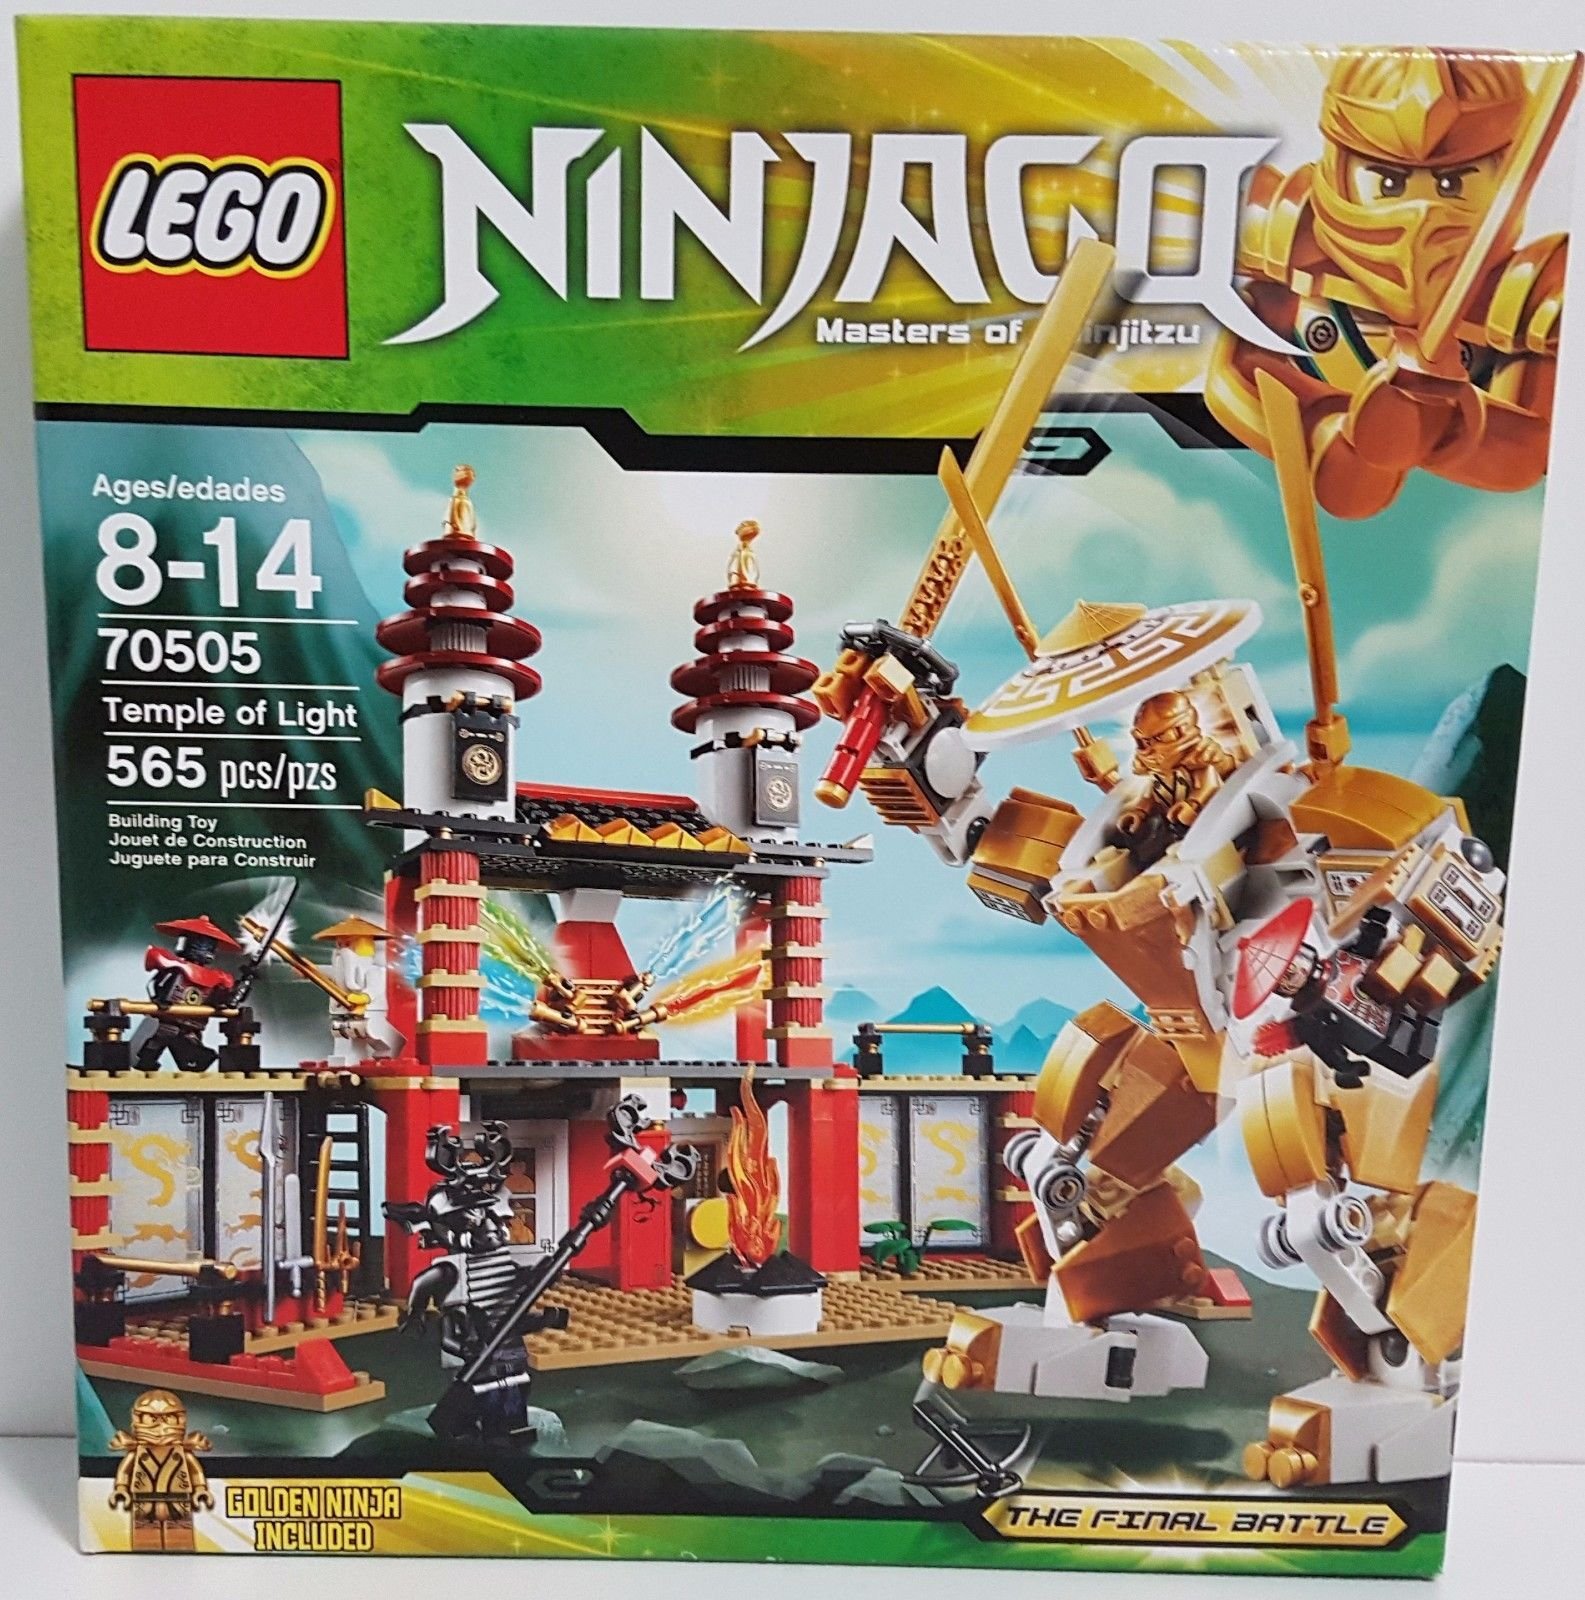 eb3d21fc94dcd LEGO Ninjago Set 70505 Masters of Spinjitzu Temple of Light Final Battle  NEW 5702014972926 | eBay $169.96 #lego #ninjago